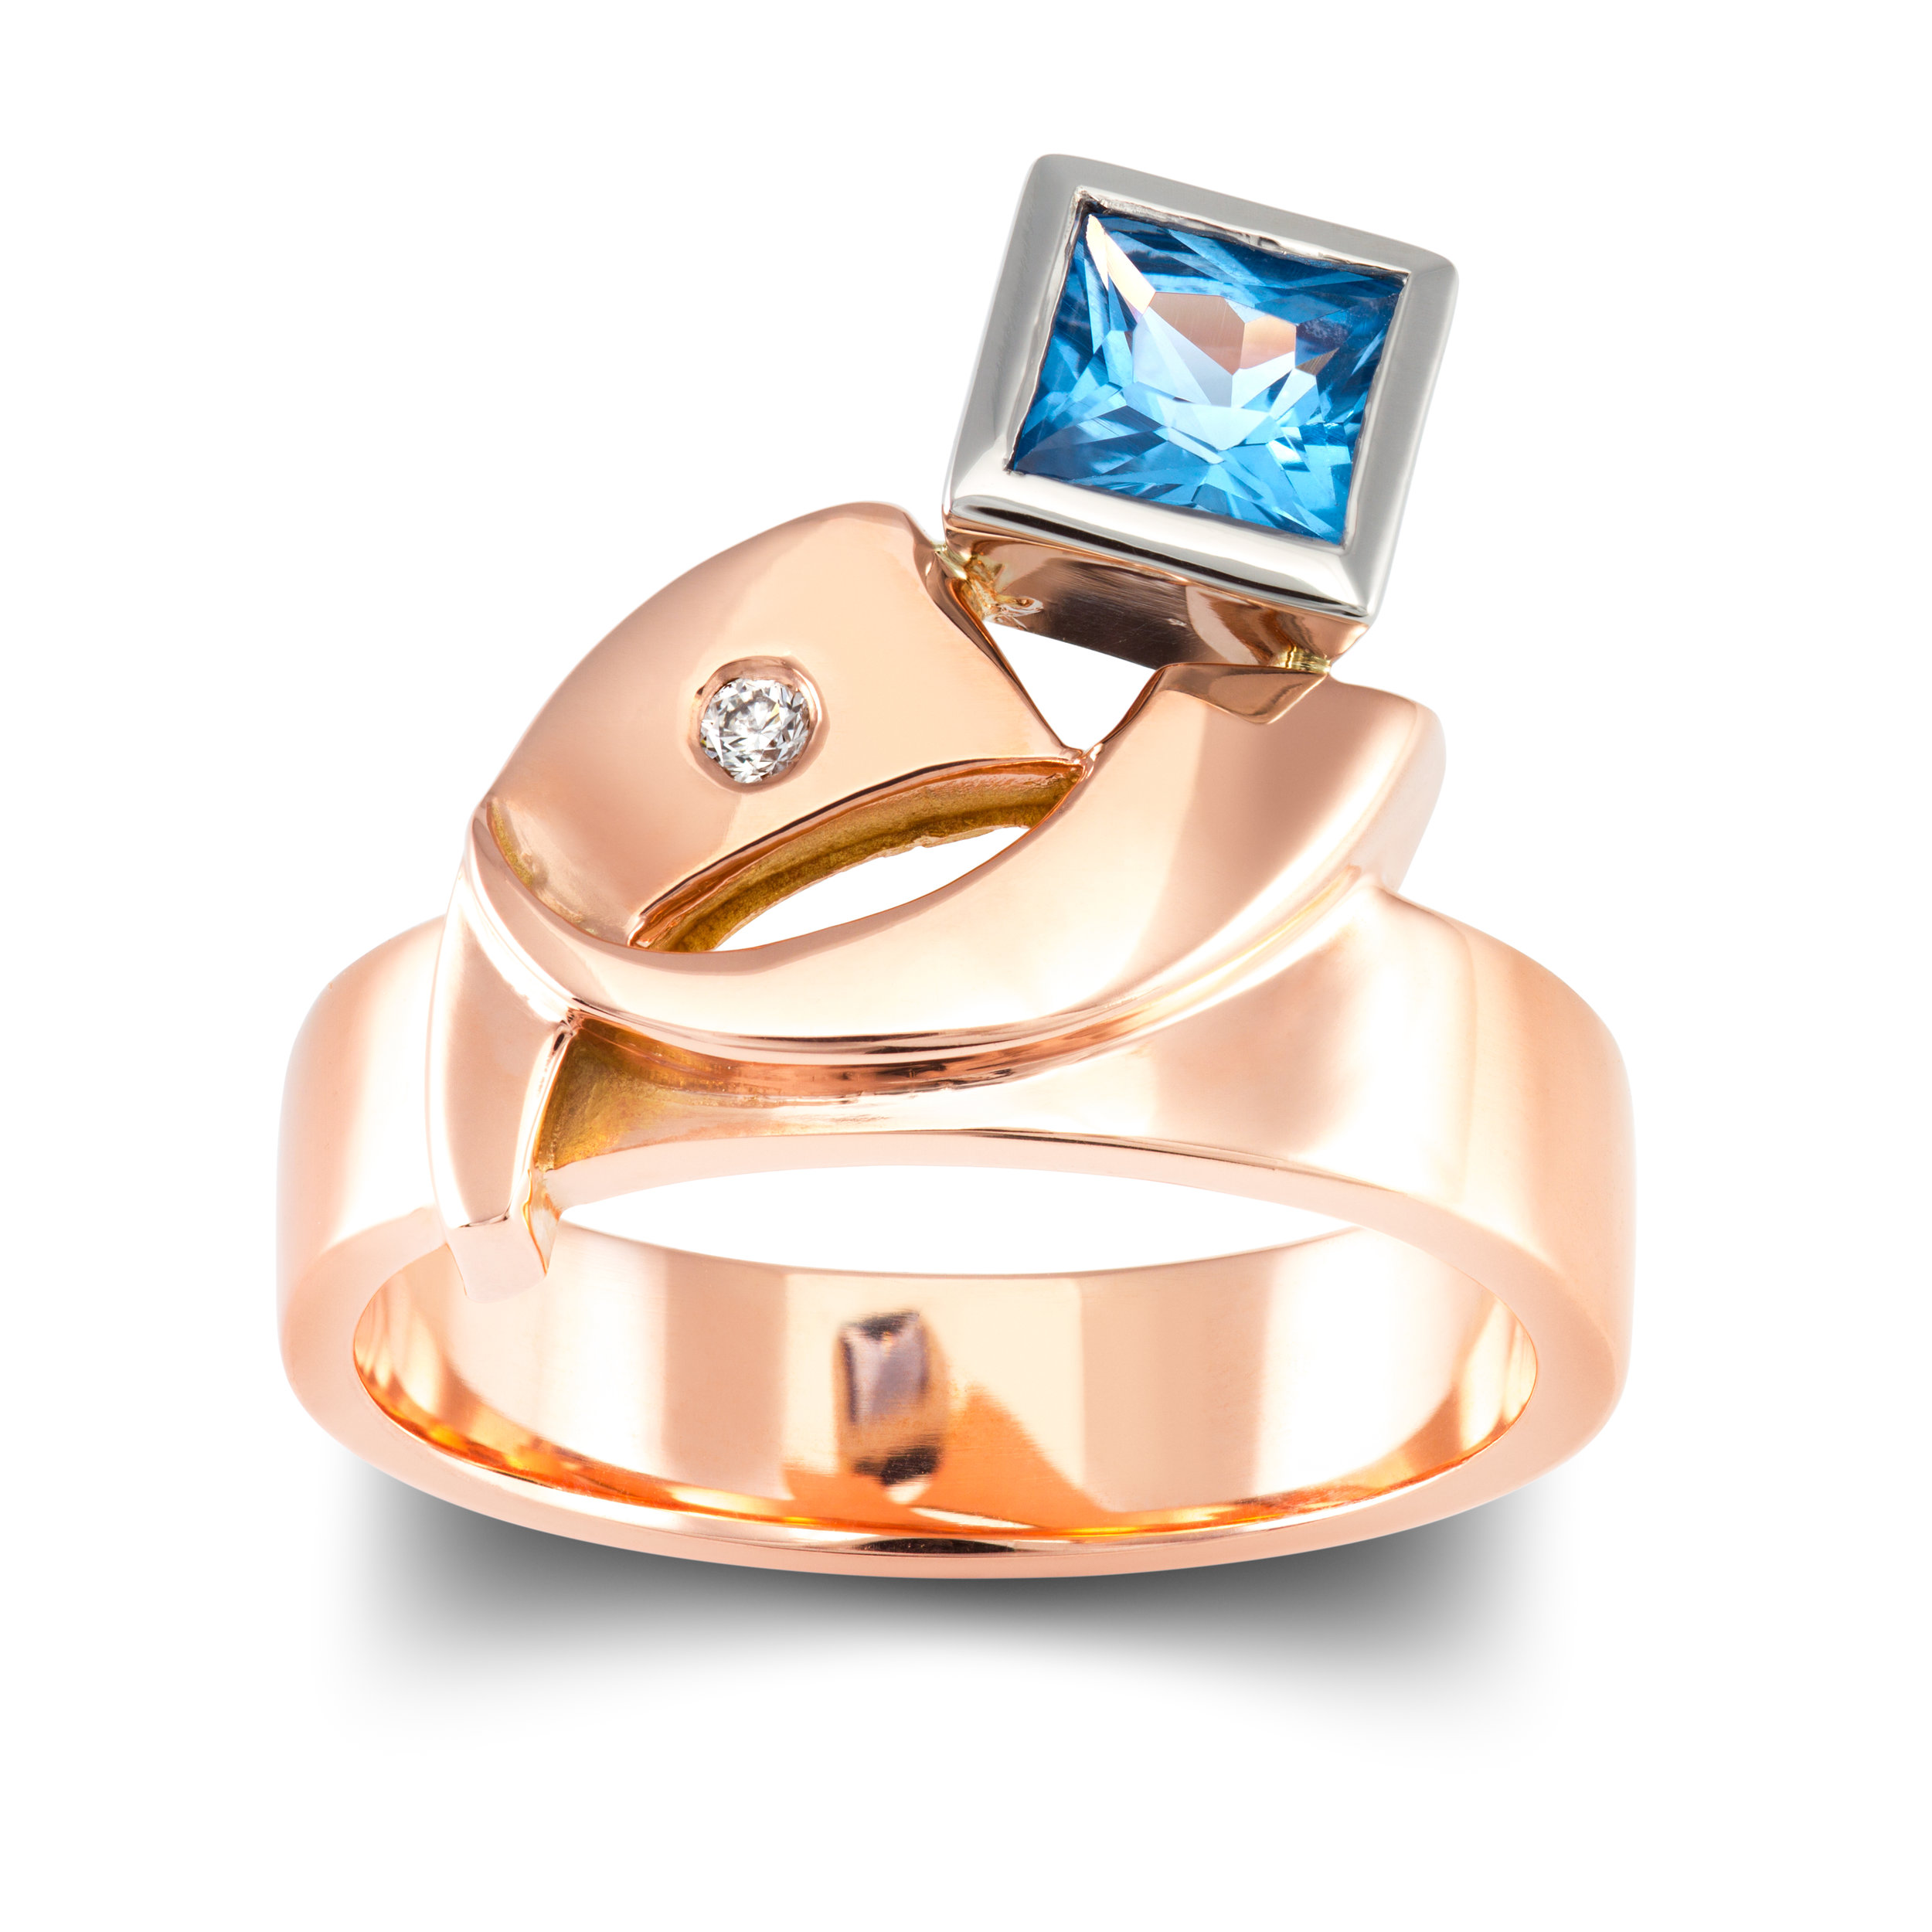 9ct rose gold dress ring set with one square spinel in a platinum rubover and one invisibly set round brilliant cut diamond - £1,272